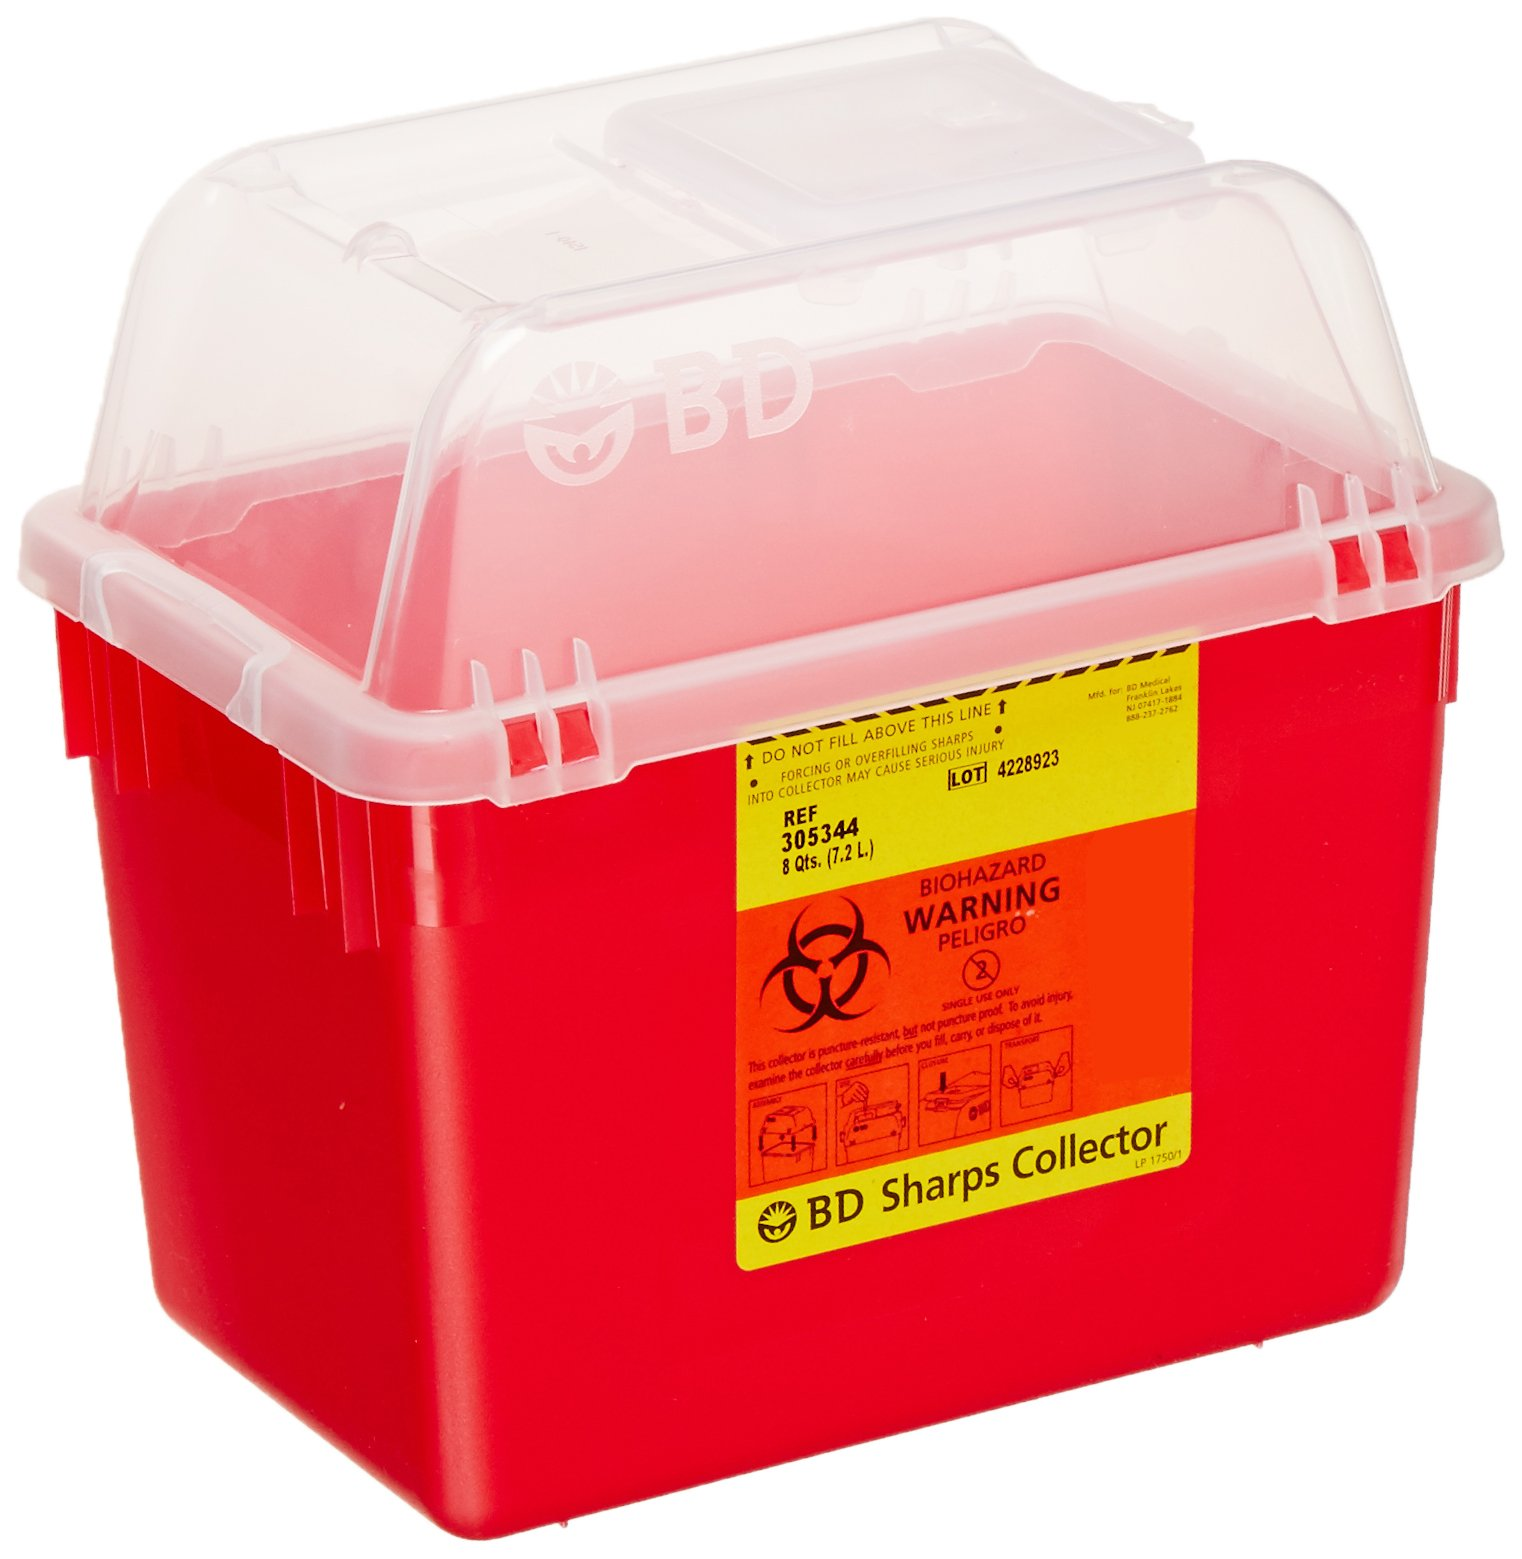 Becton Dickinson 305344 Red Multi-Use Nestable Collector with Regular Funnel Clear Top, 8qt Capacity (Case of 24)